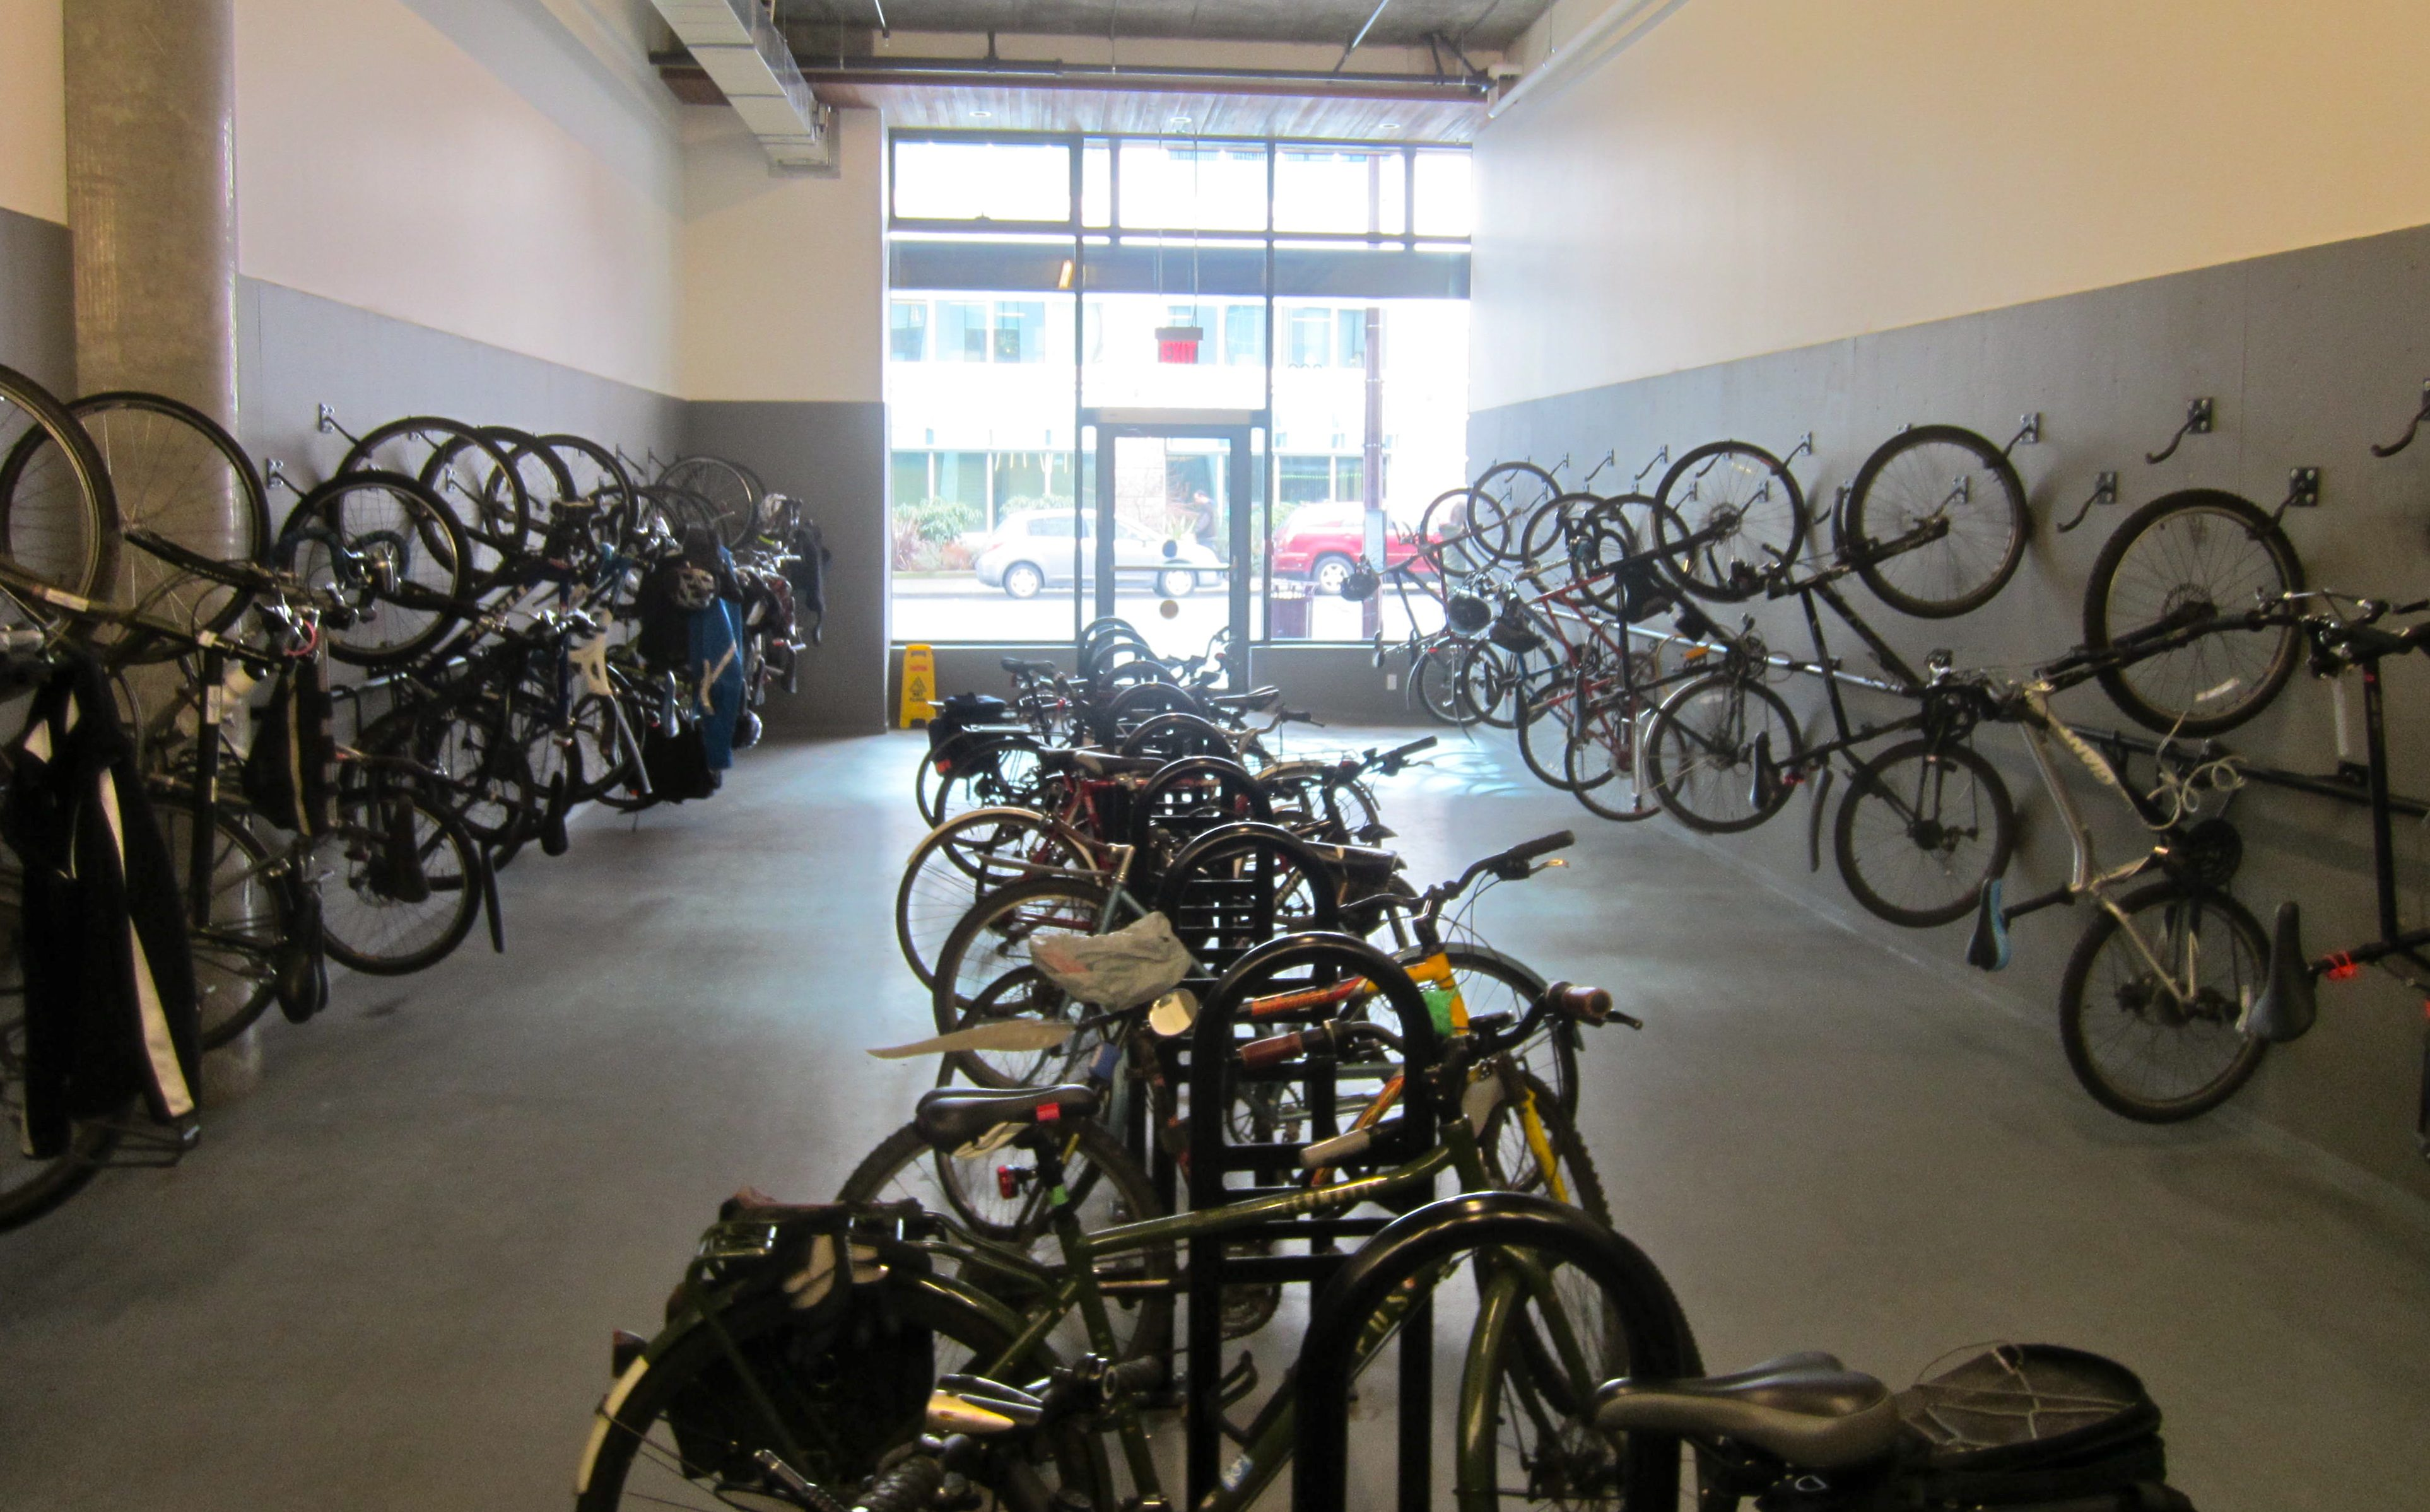 Rethink Urban How Can The Workplace Encourage Cycling